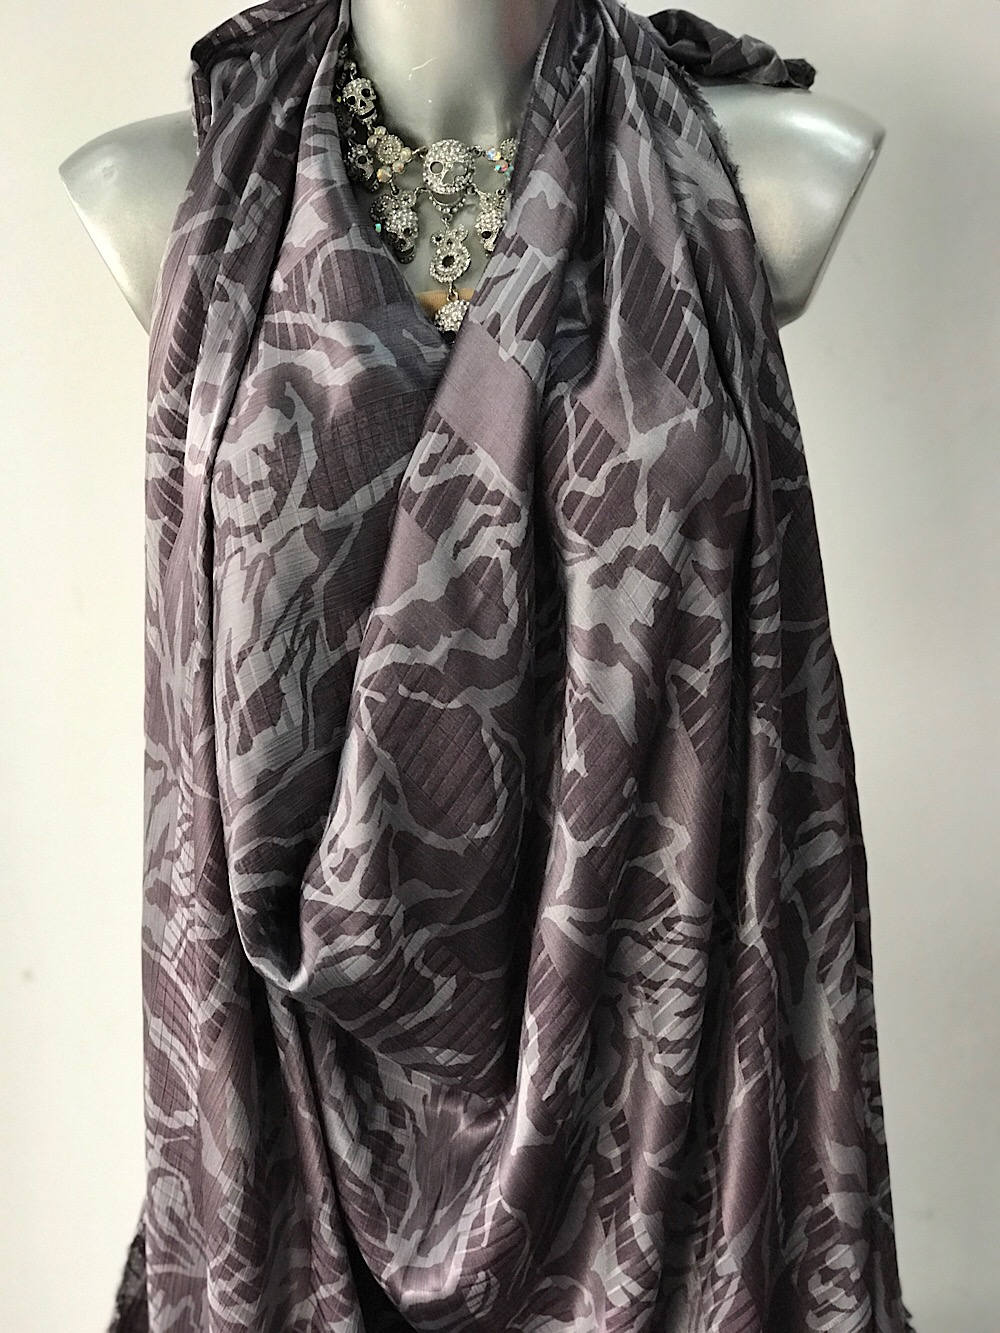 grey viscose jacquard fabric, silky finish, abstract print 140cm European production